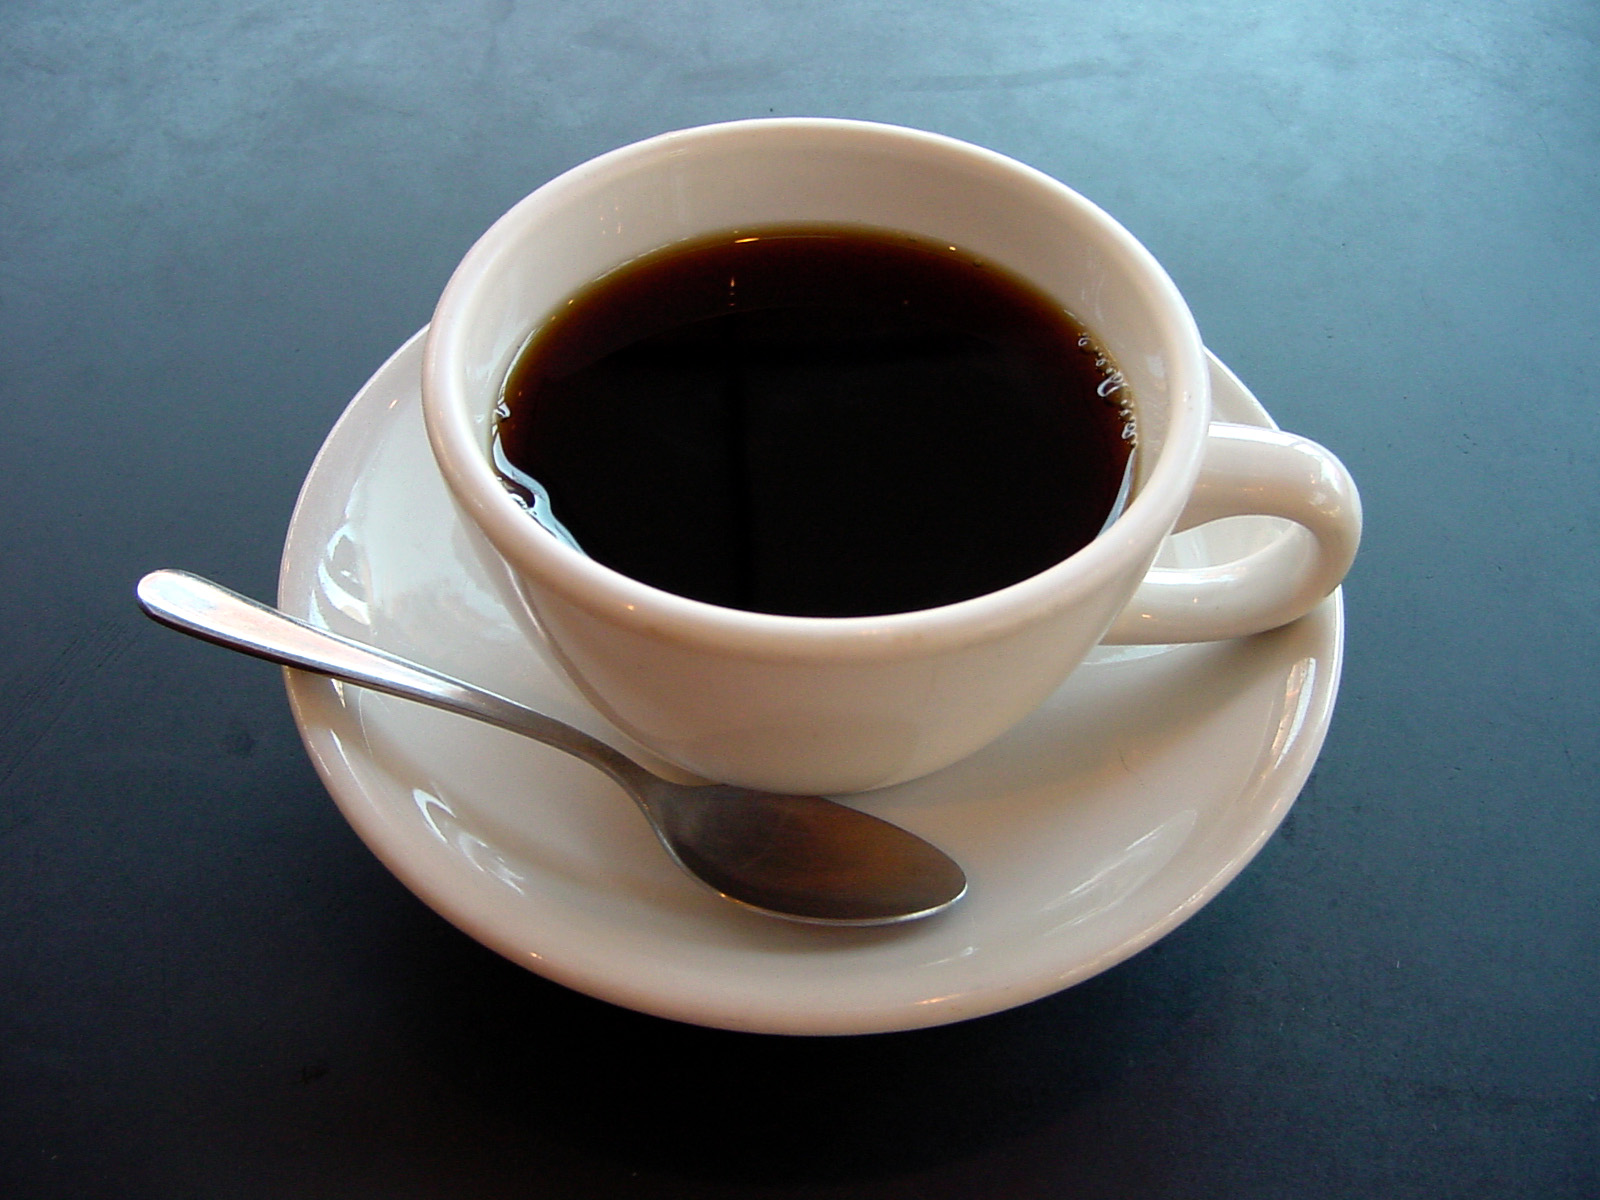 Image of a cup of coffee.